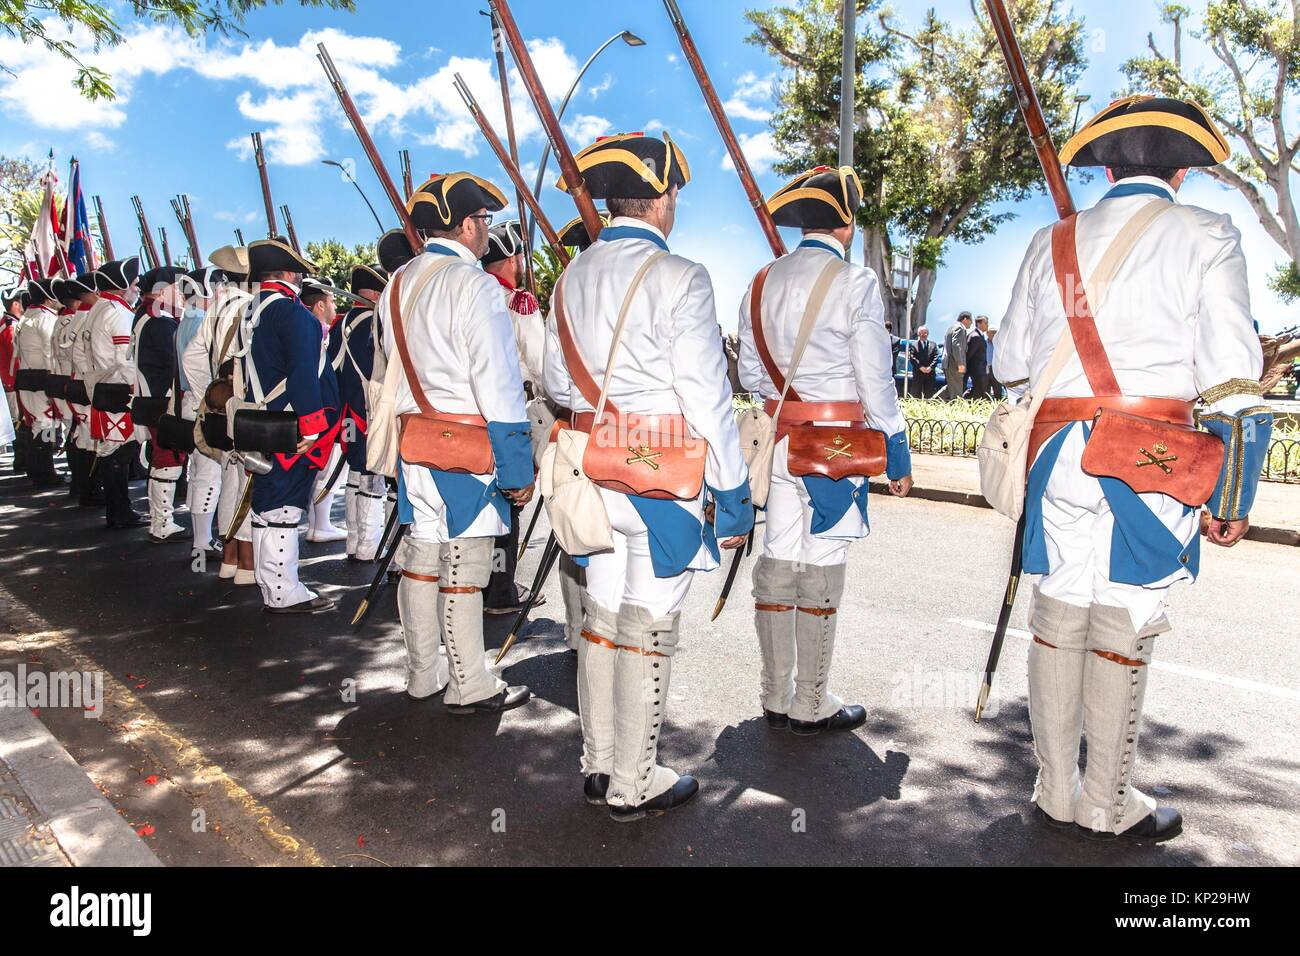 Staging of 25th july 1797 british army defeat during the Tenerife island invasion - Stock Image